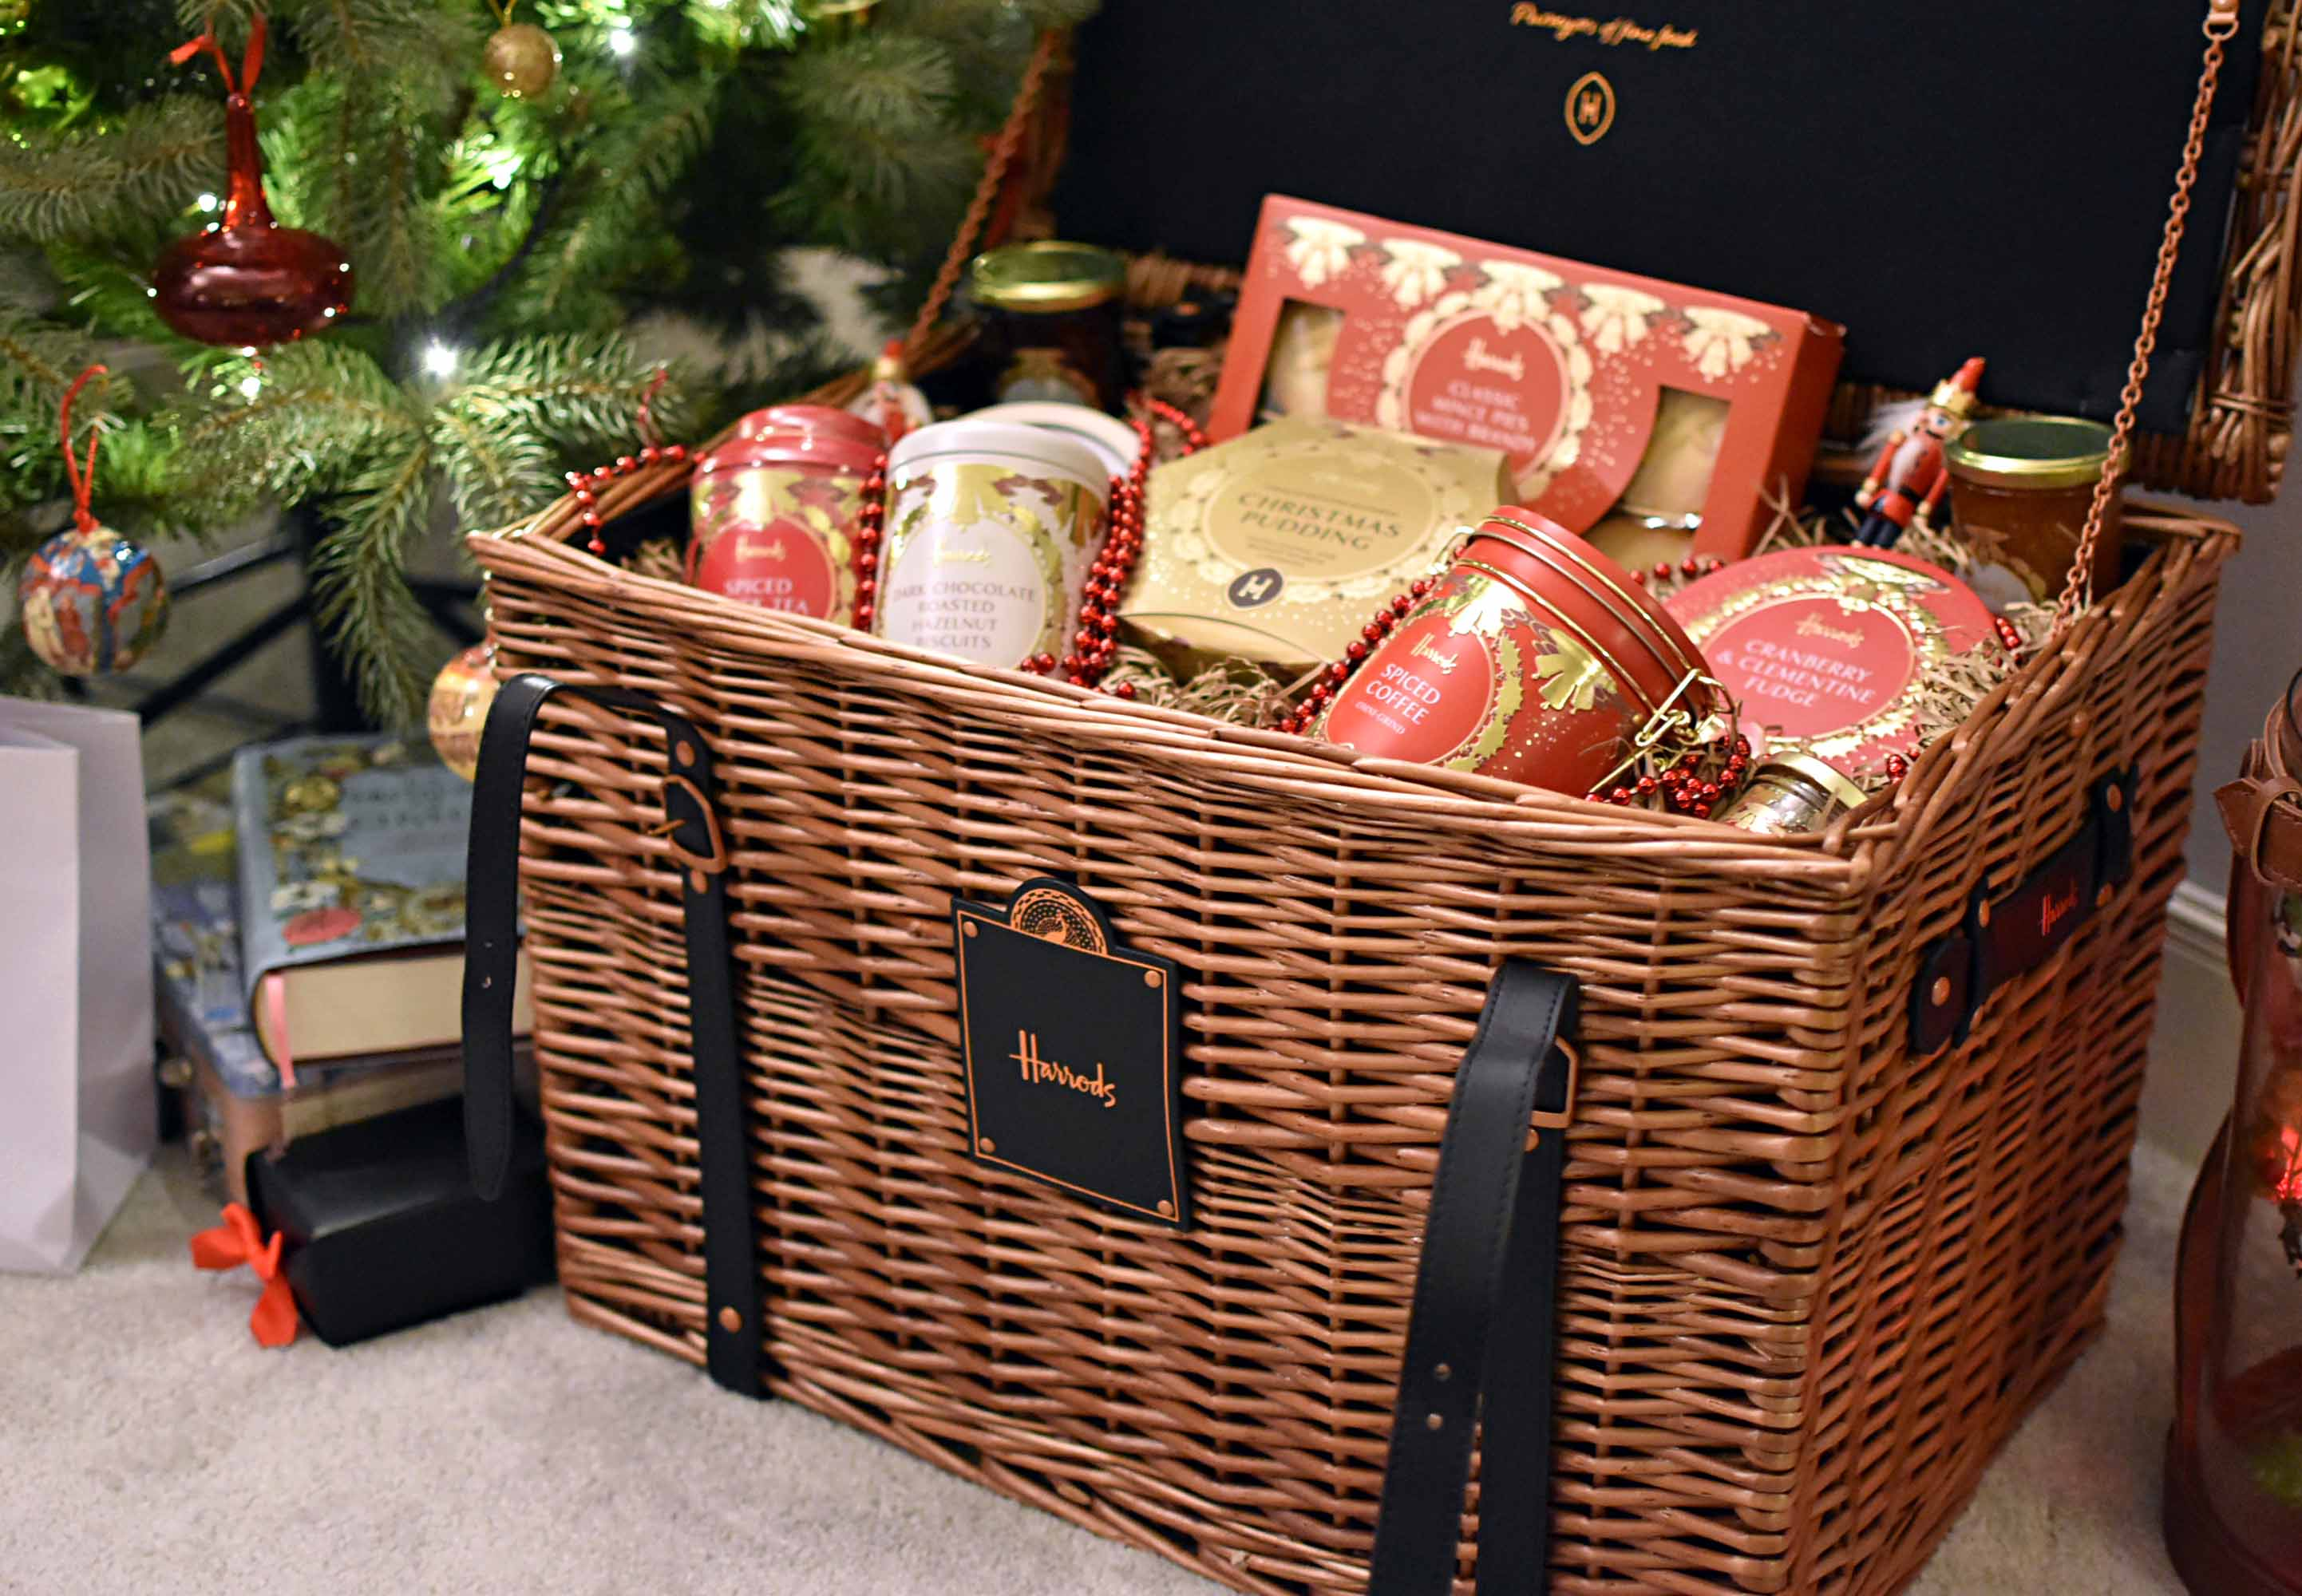 ... in my property and then of course – there's the presents. One of which was a very early surprise from Harrods in the form of a rather impressive hamper.